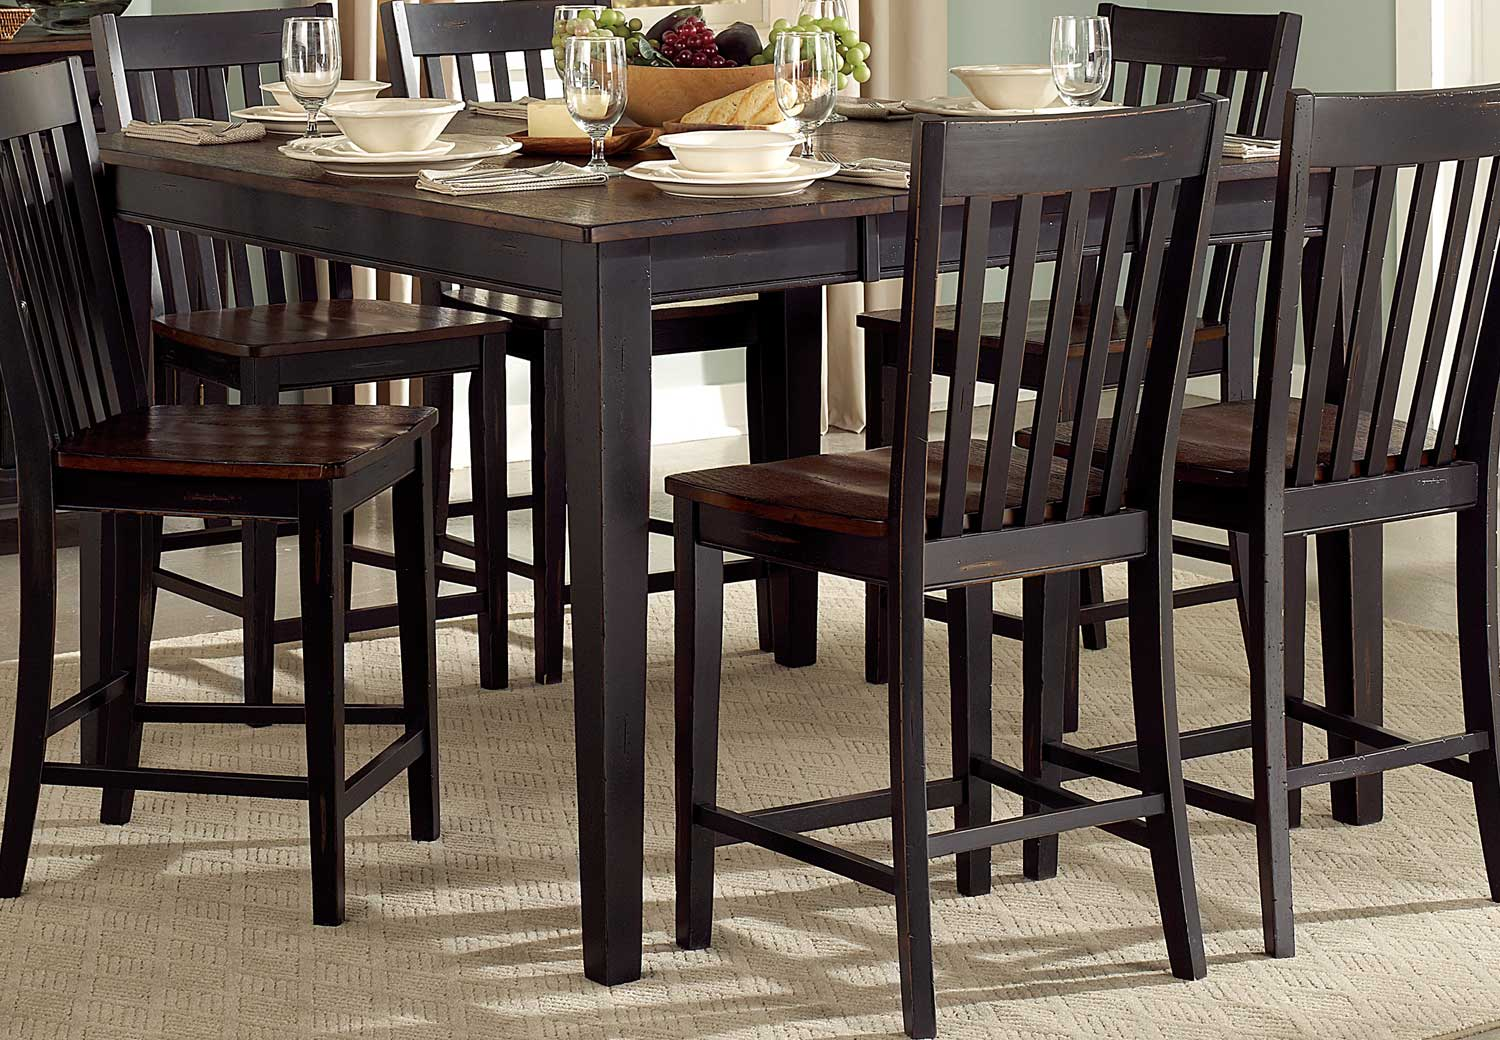 Homelegance Three Falls Counter Height Table - Two Tone Dark Brown/Black Sand